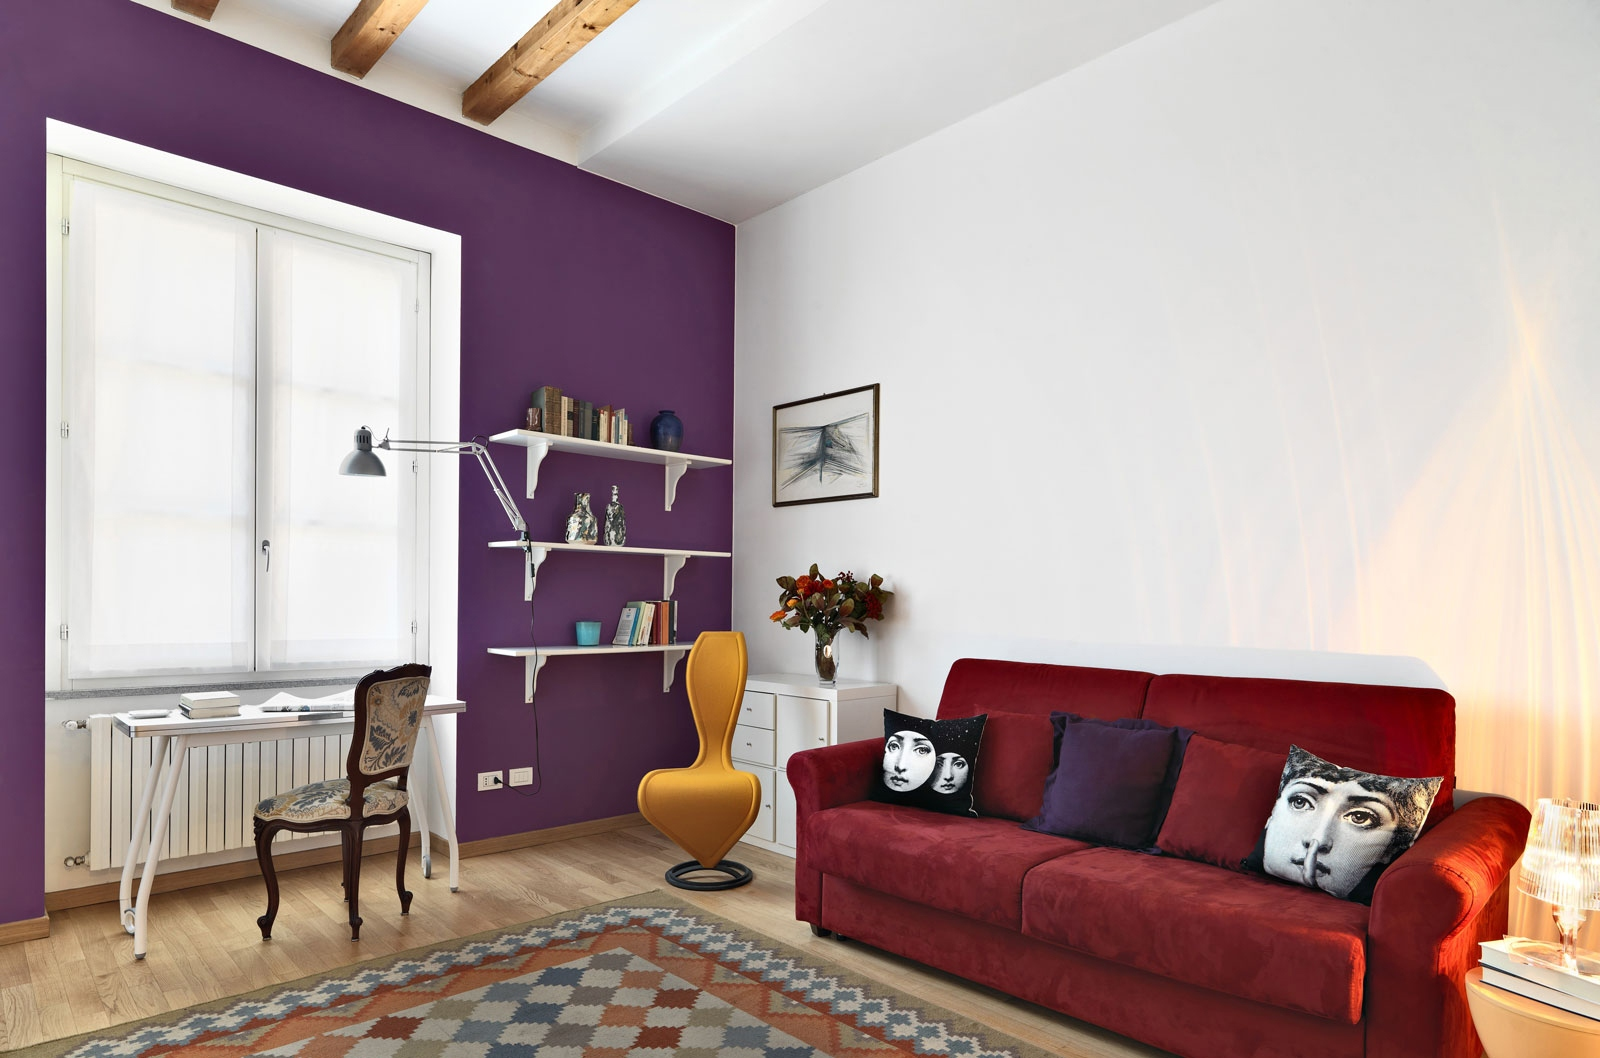 2-studio-home-design Wooden-wall-bookcase White-purple-painted-wall